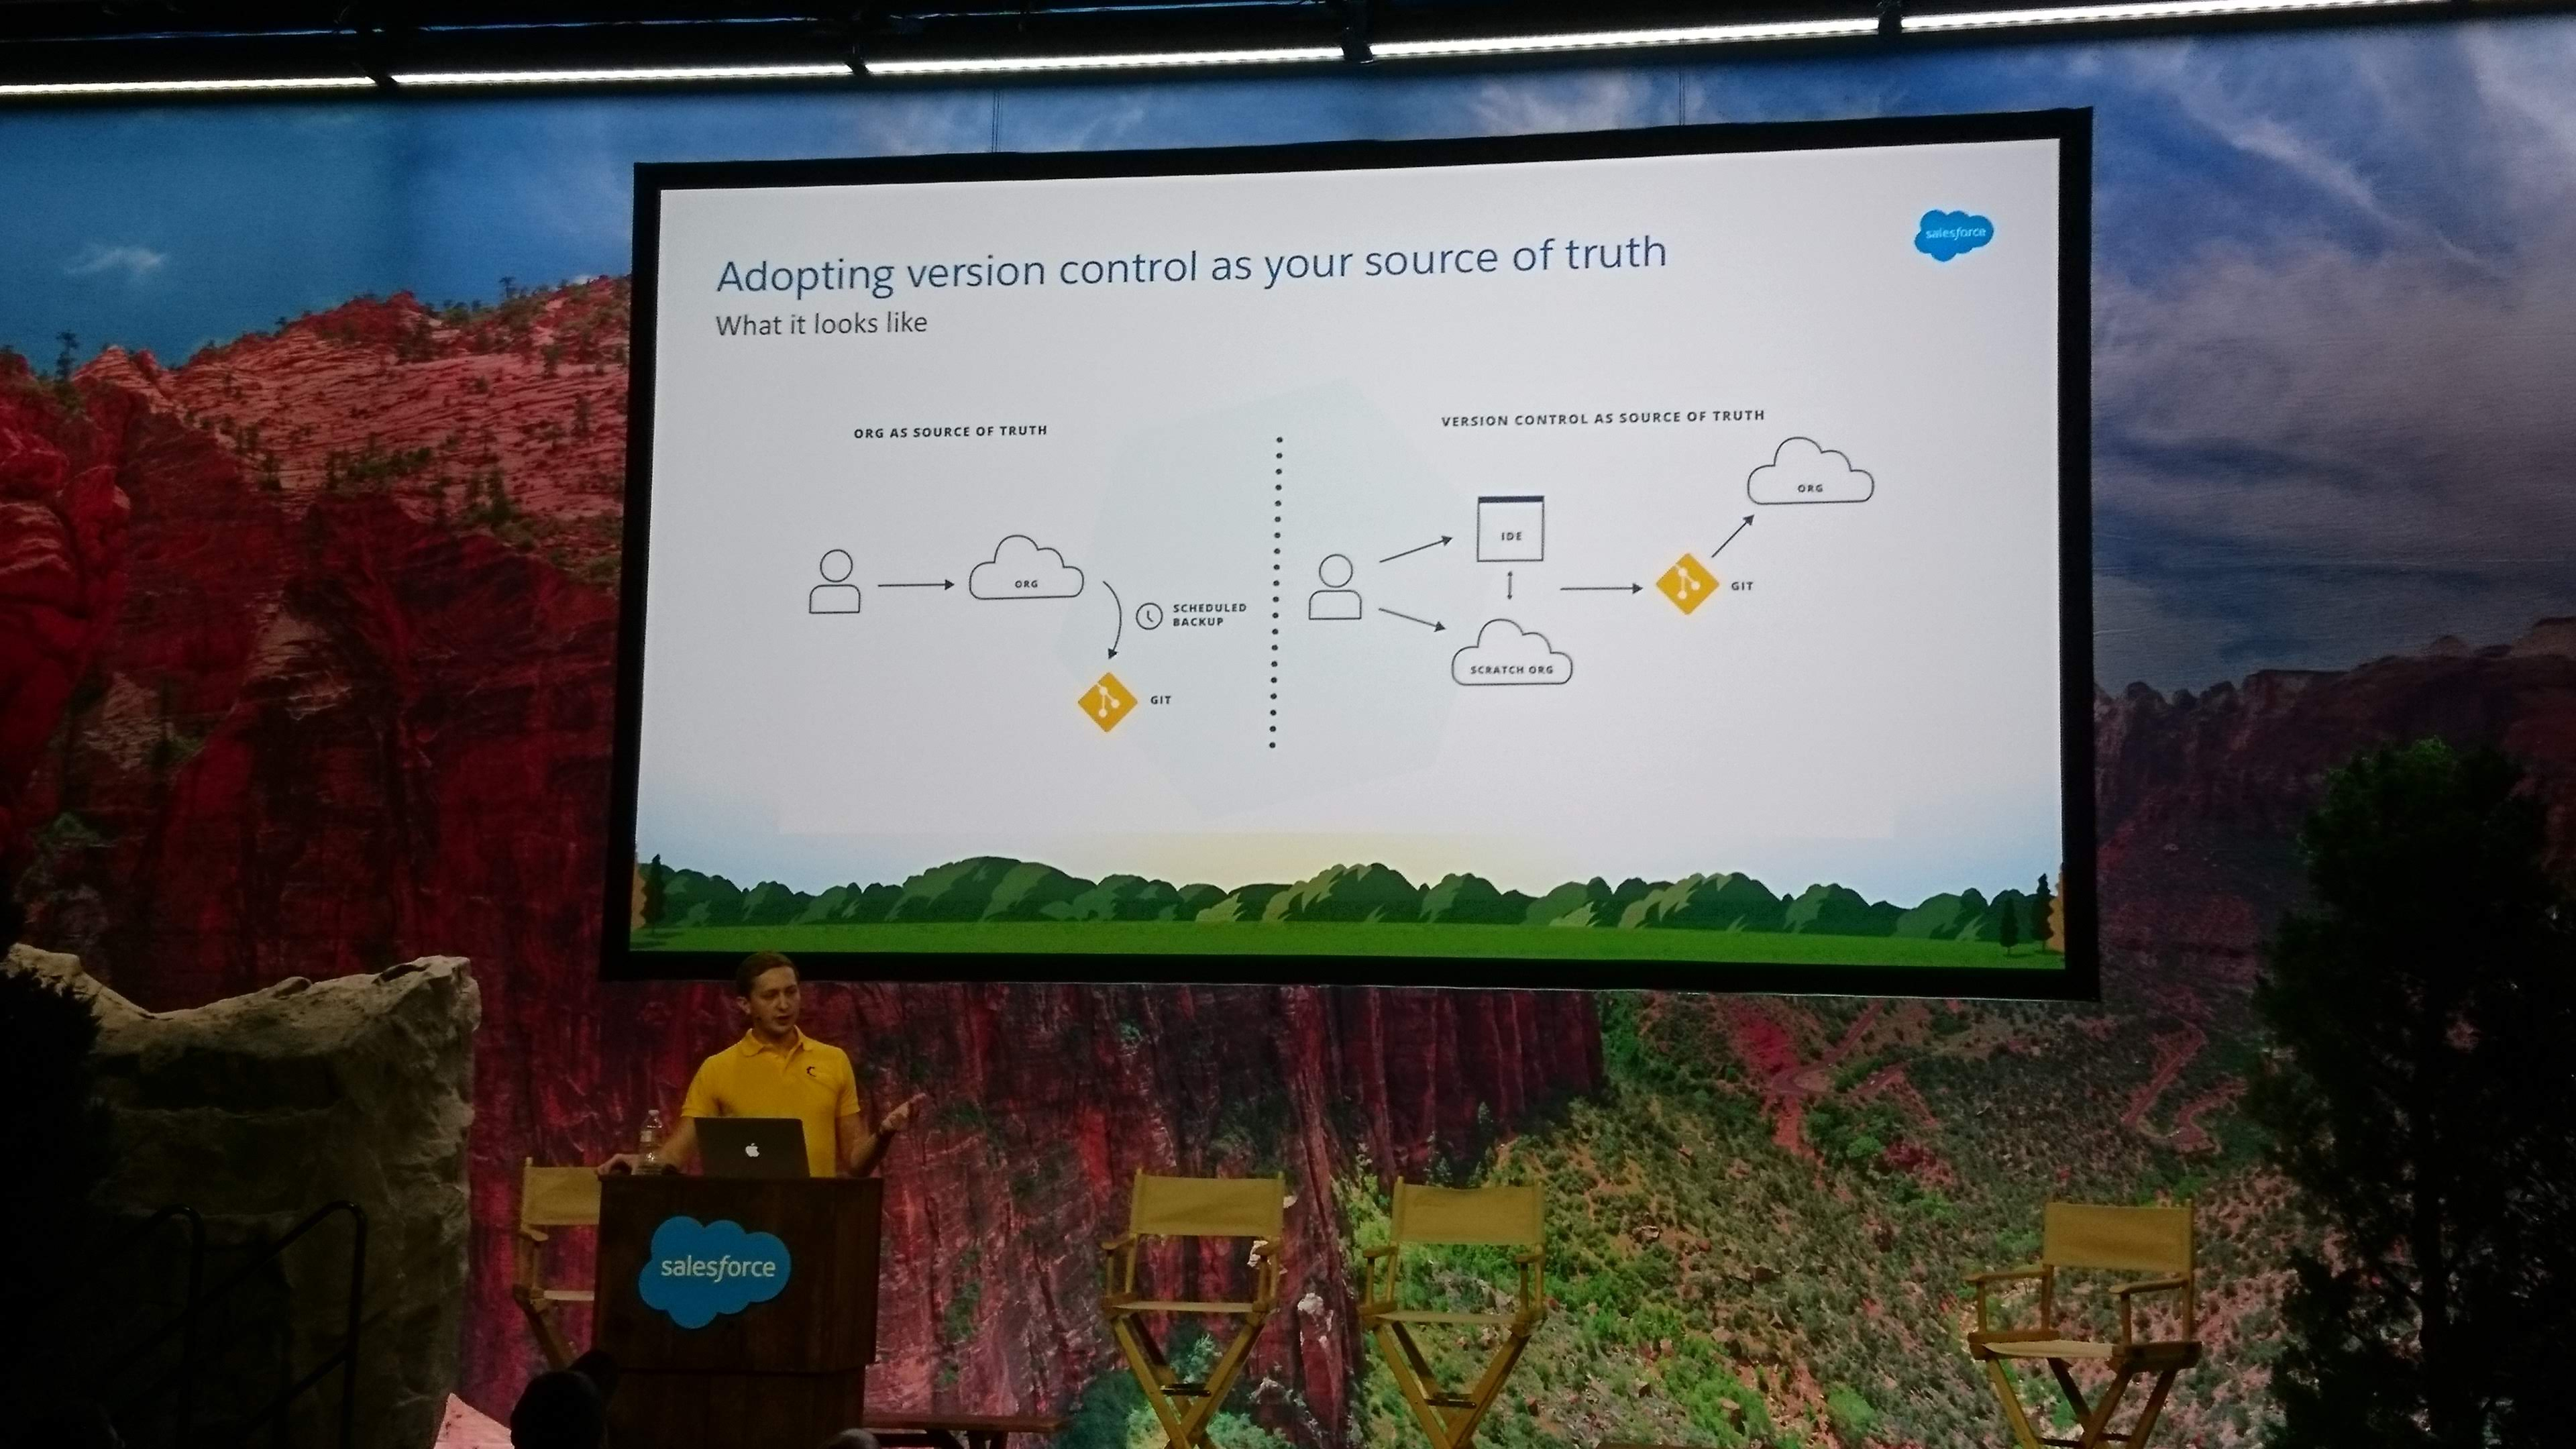 Version control as your source of truth as a key step of DevOps maturity.